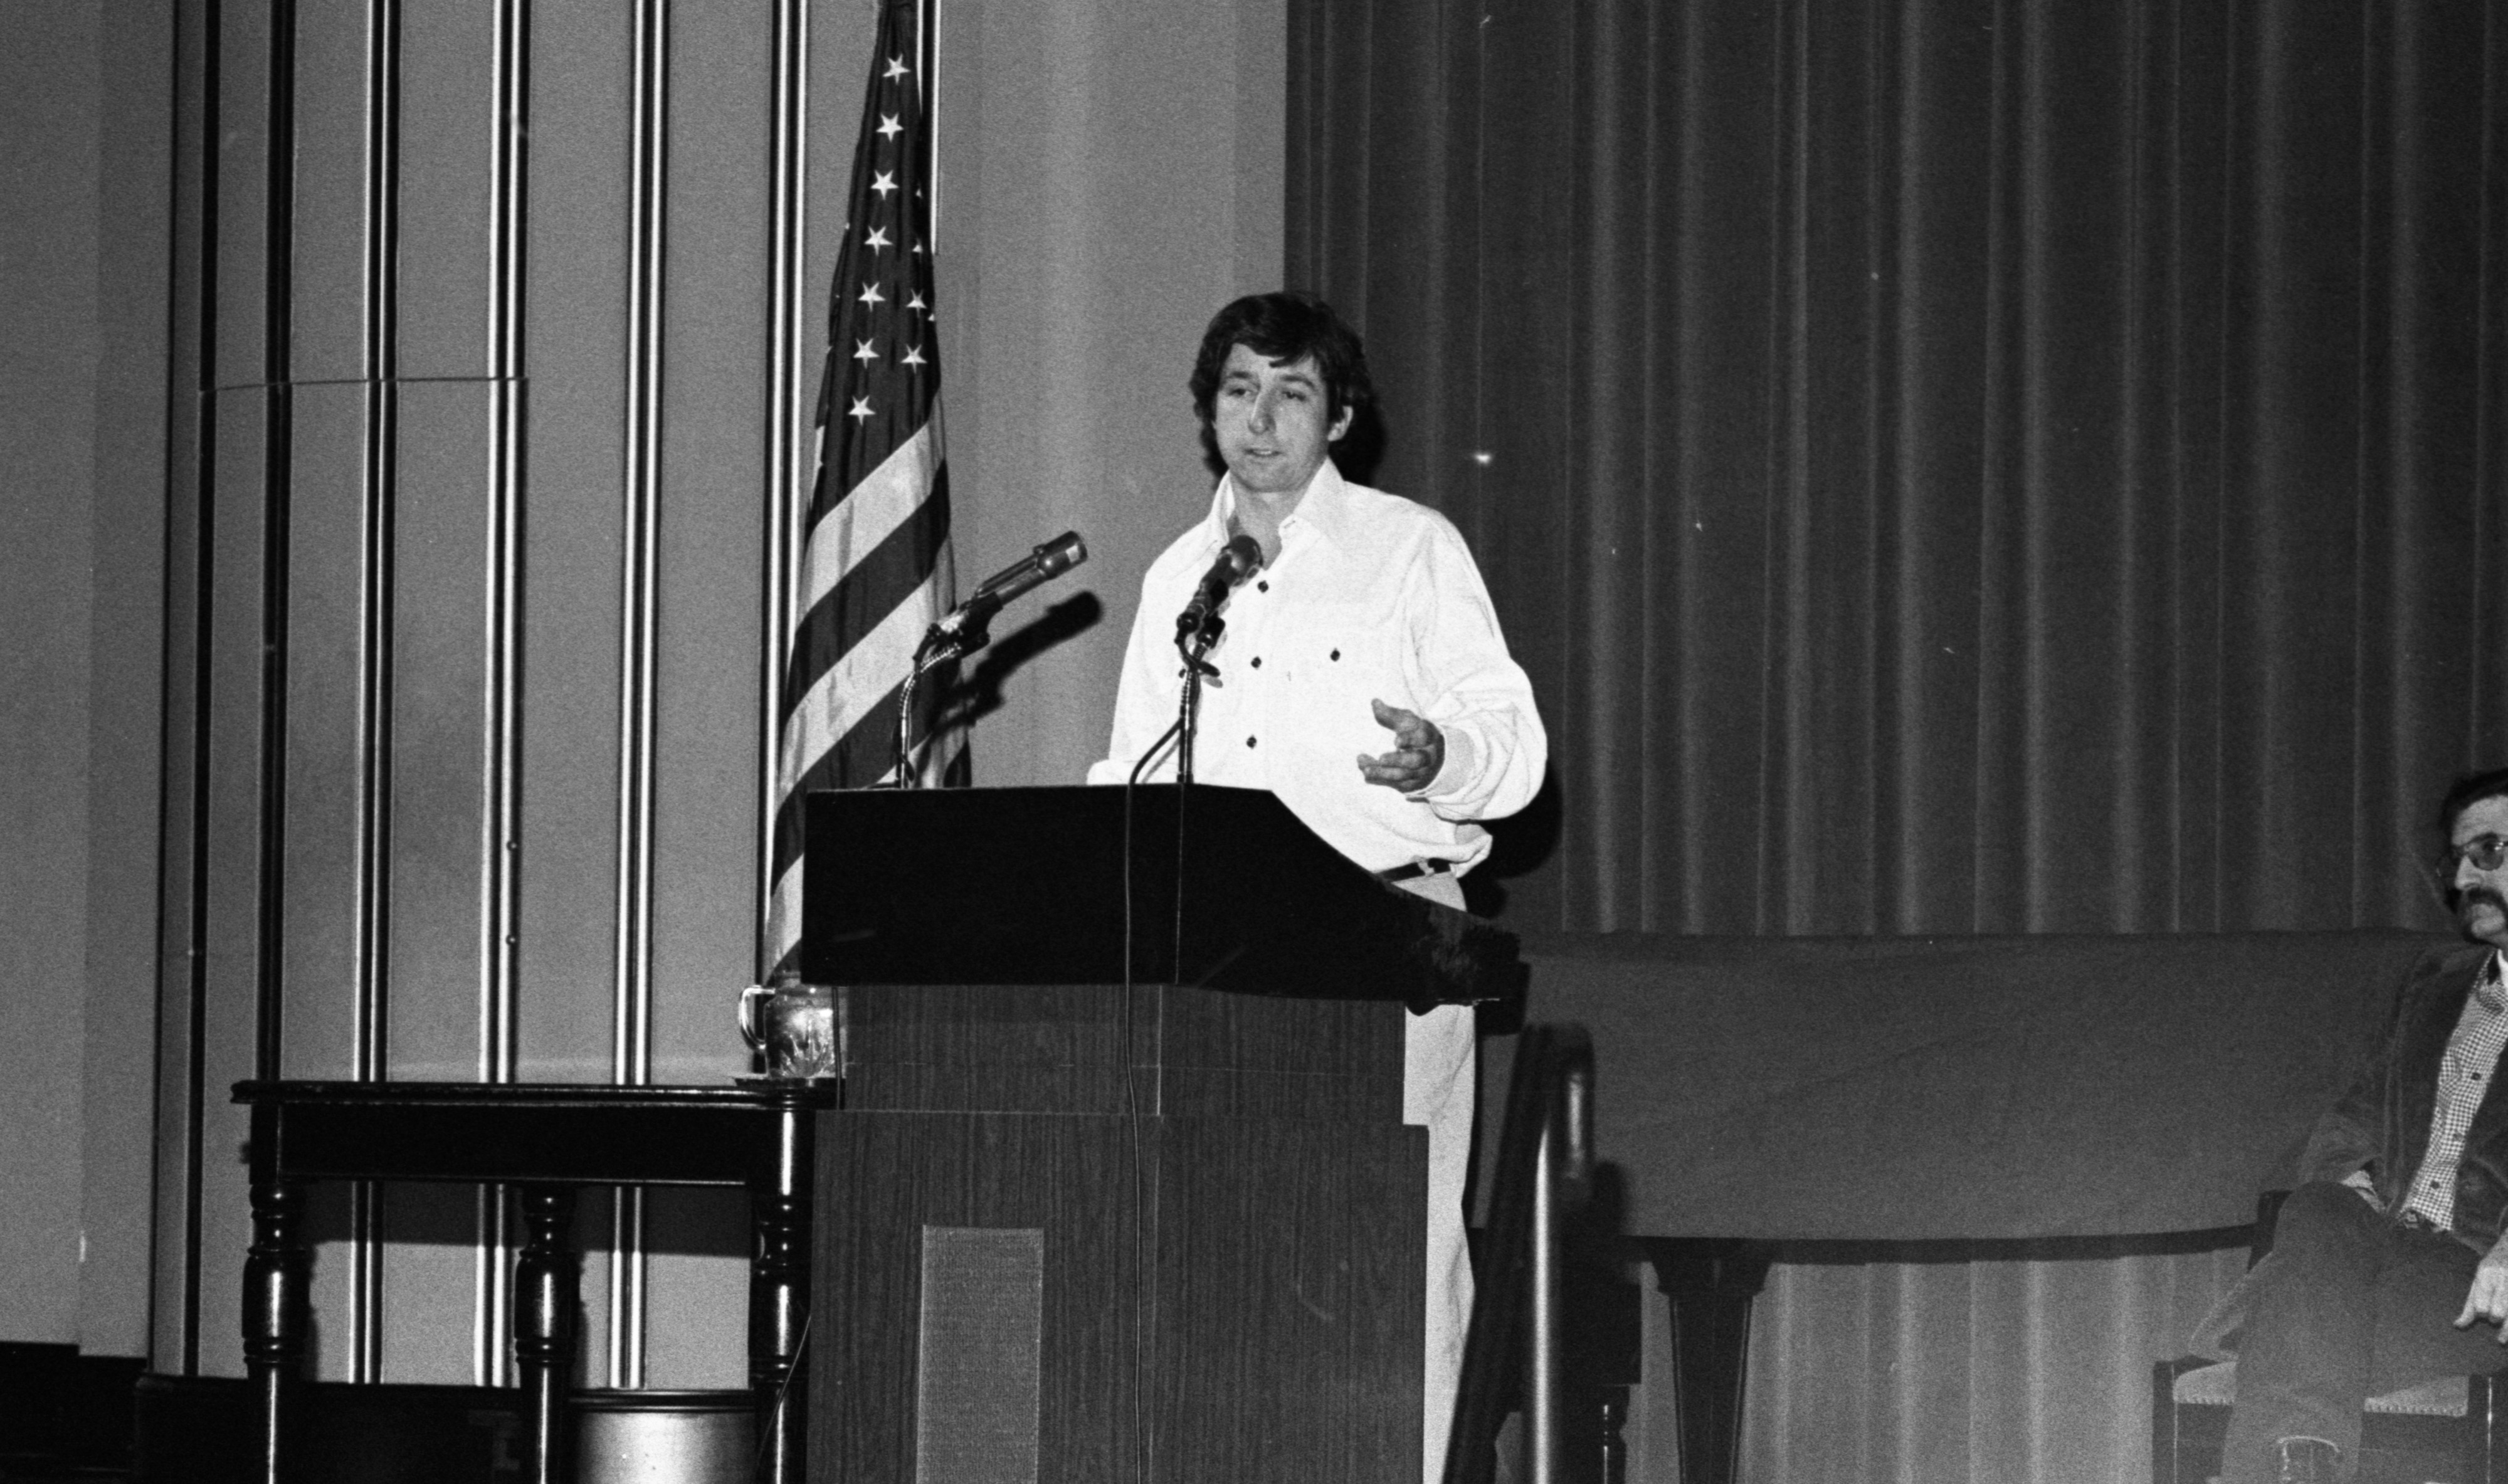 Tom Hayden Given Hero's Welcome at Rackham Auditorium, January 1977 image